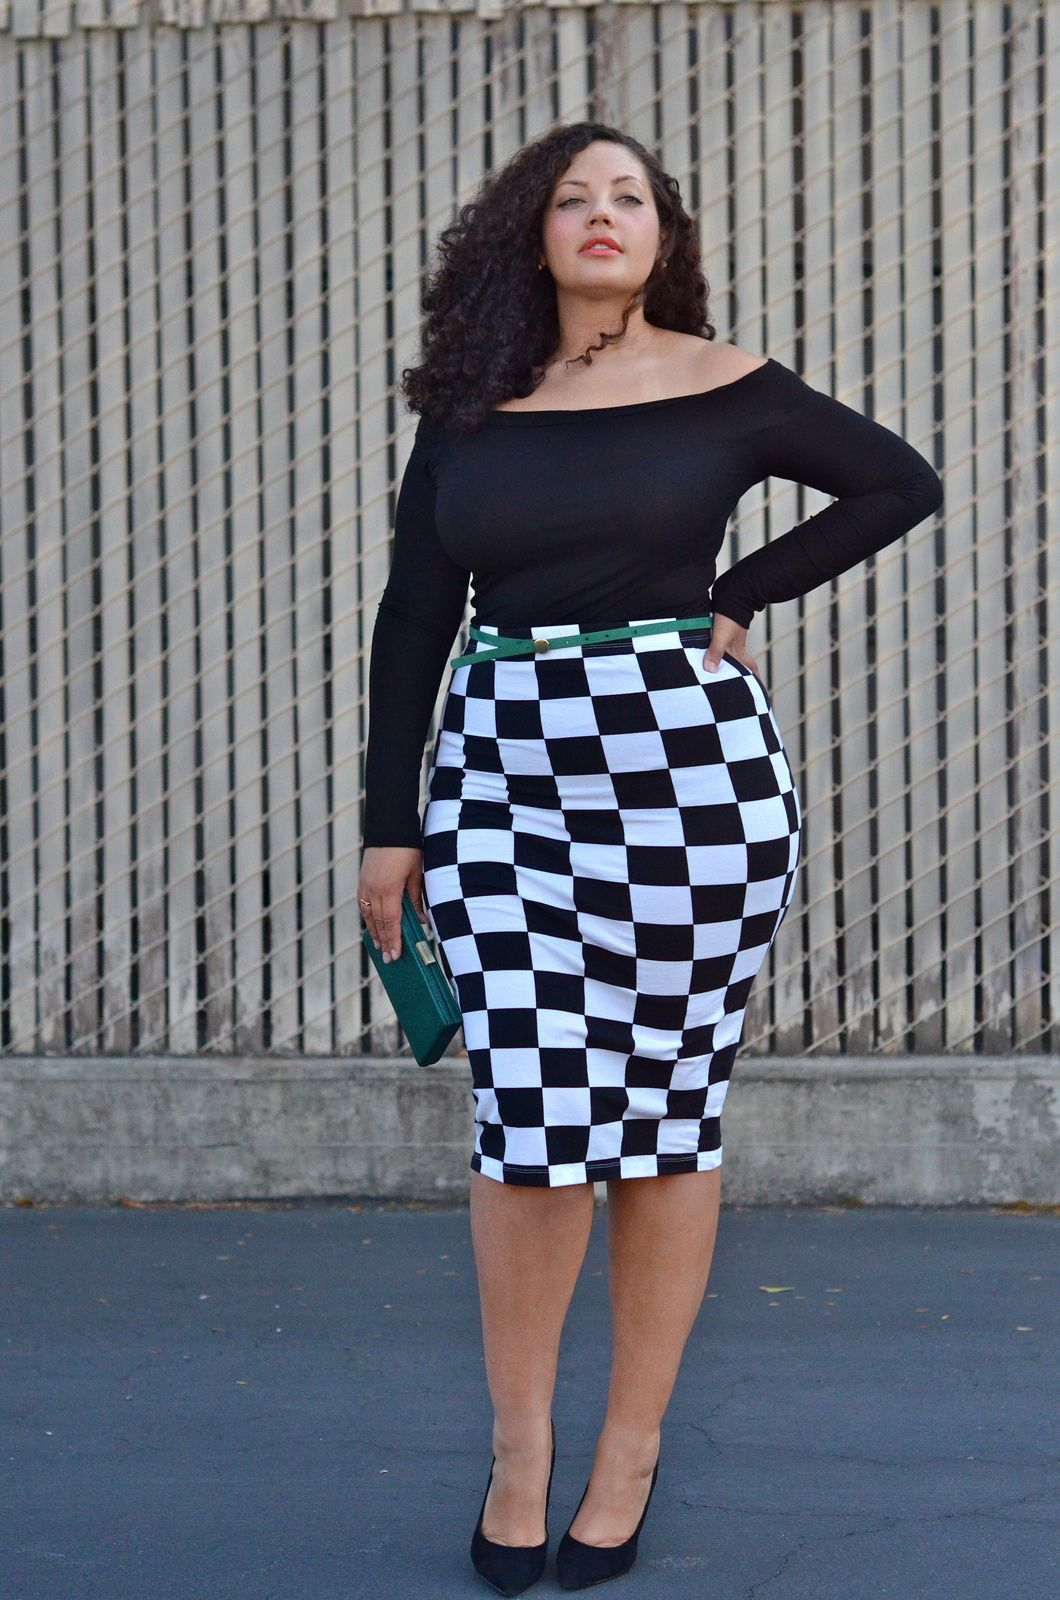 Checkered | Curves and Girls